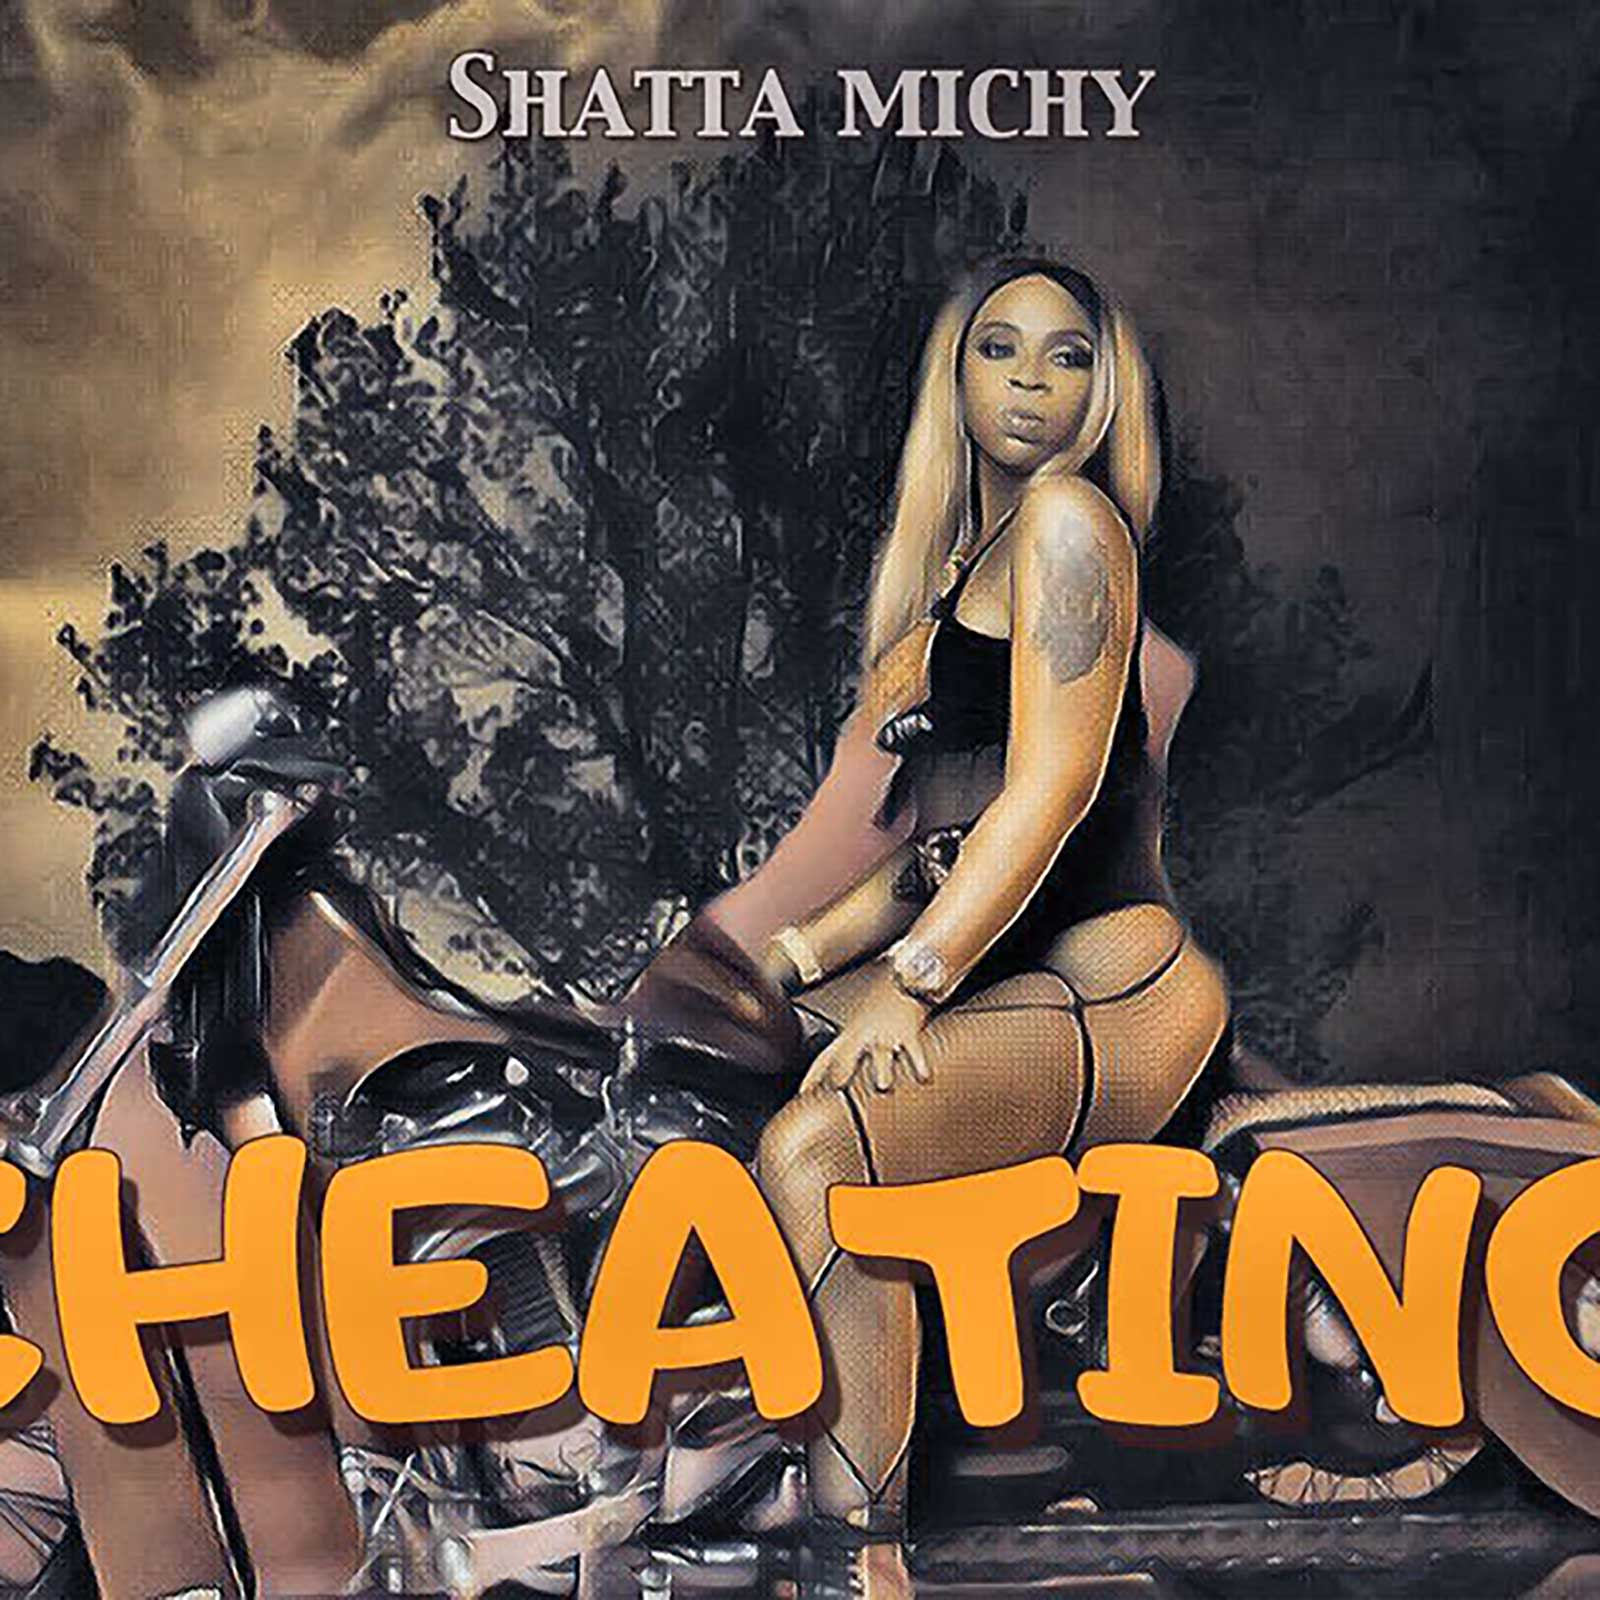 Cheating by Shatta Michy